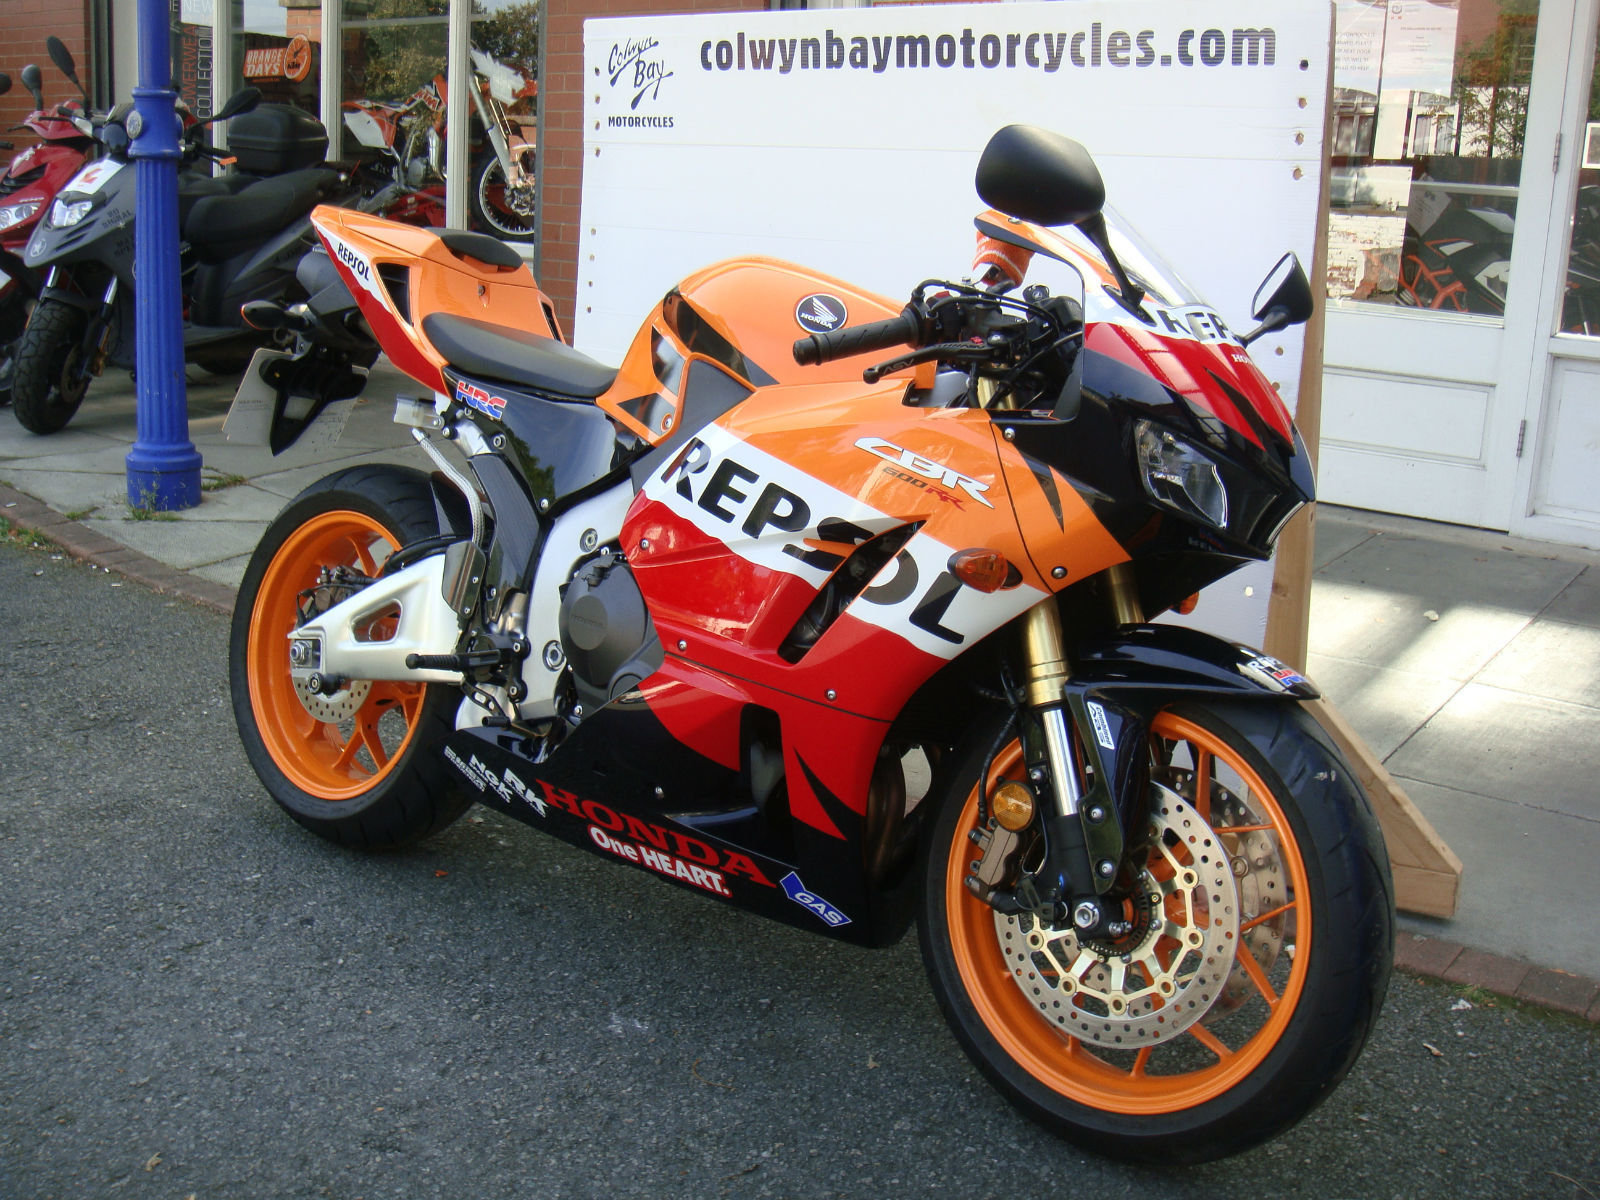 2013 honda cbr 600rr abs repsol akrapovic one owner 1368. Black Bedroom Furniture Sets. Home Design Ideas